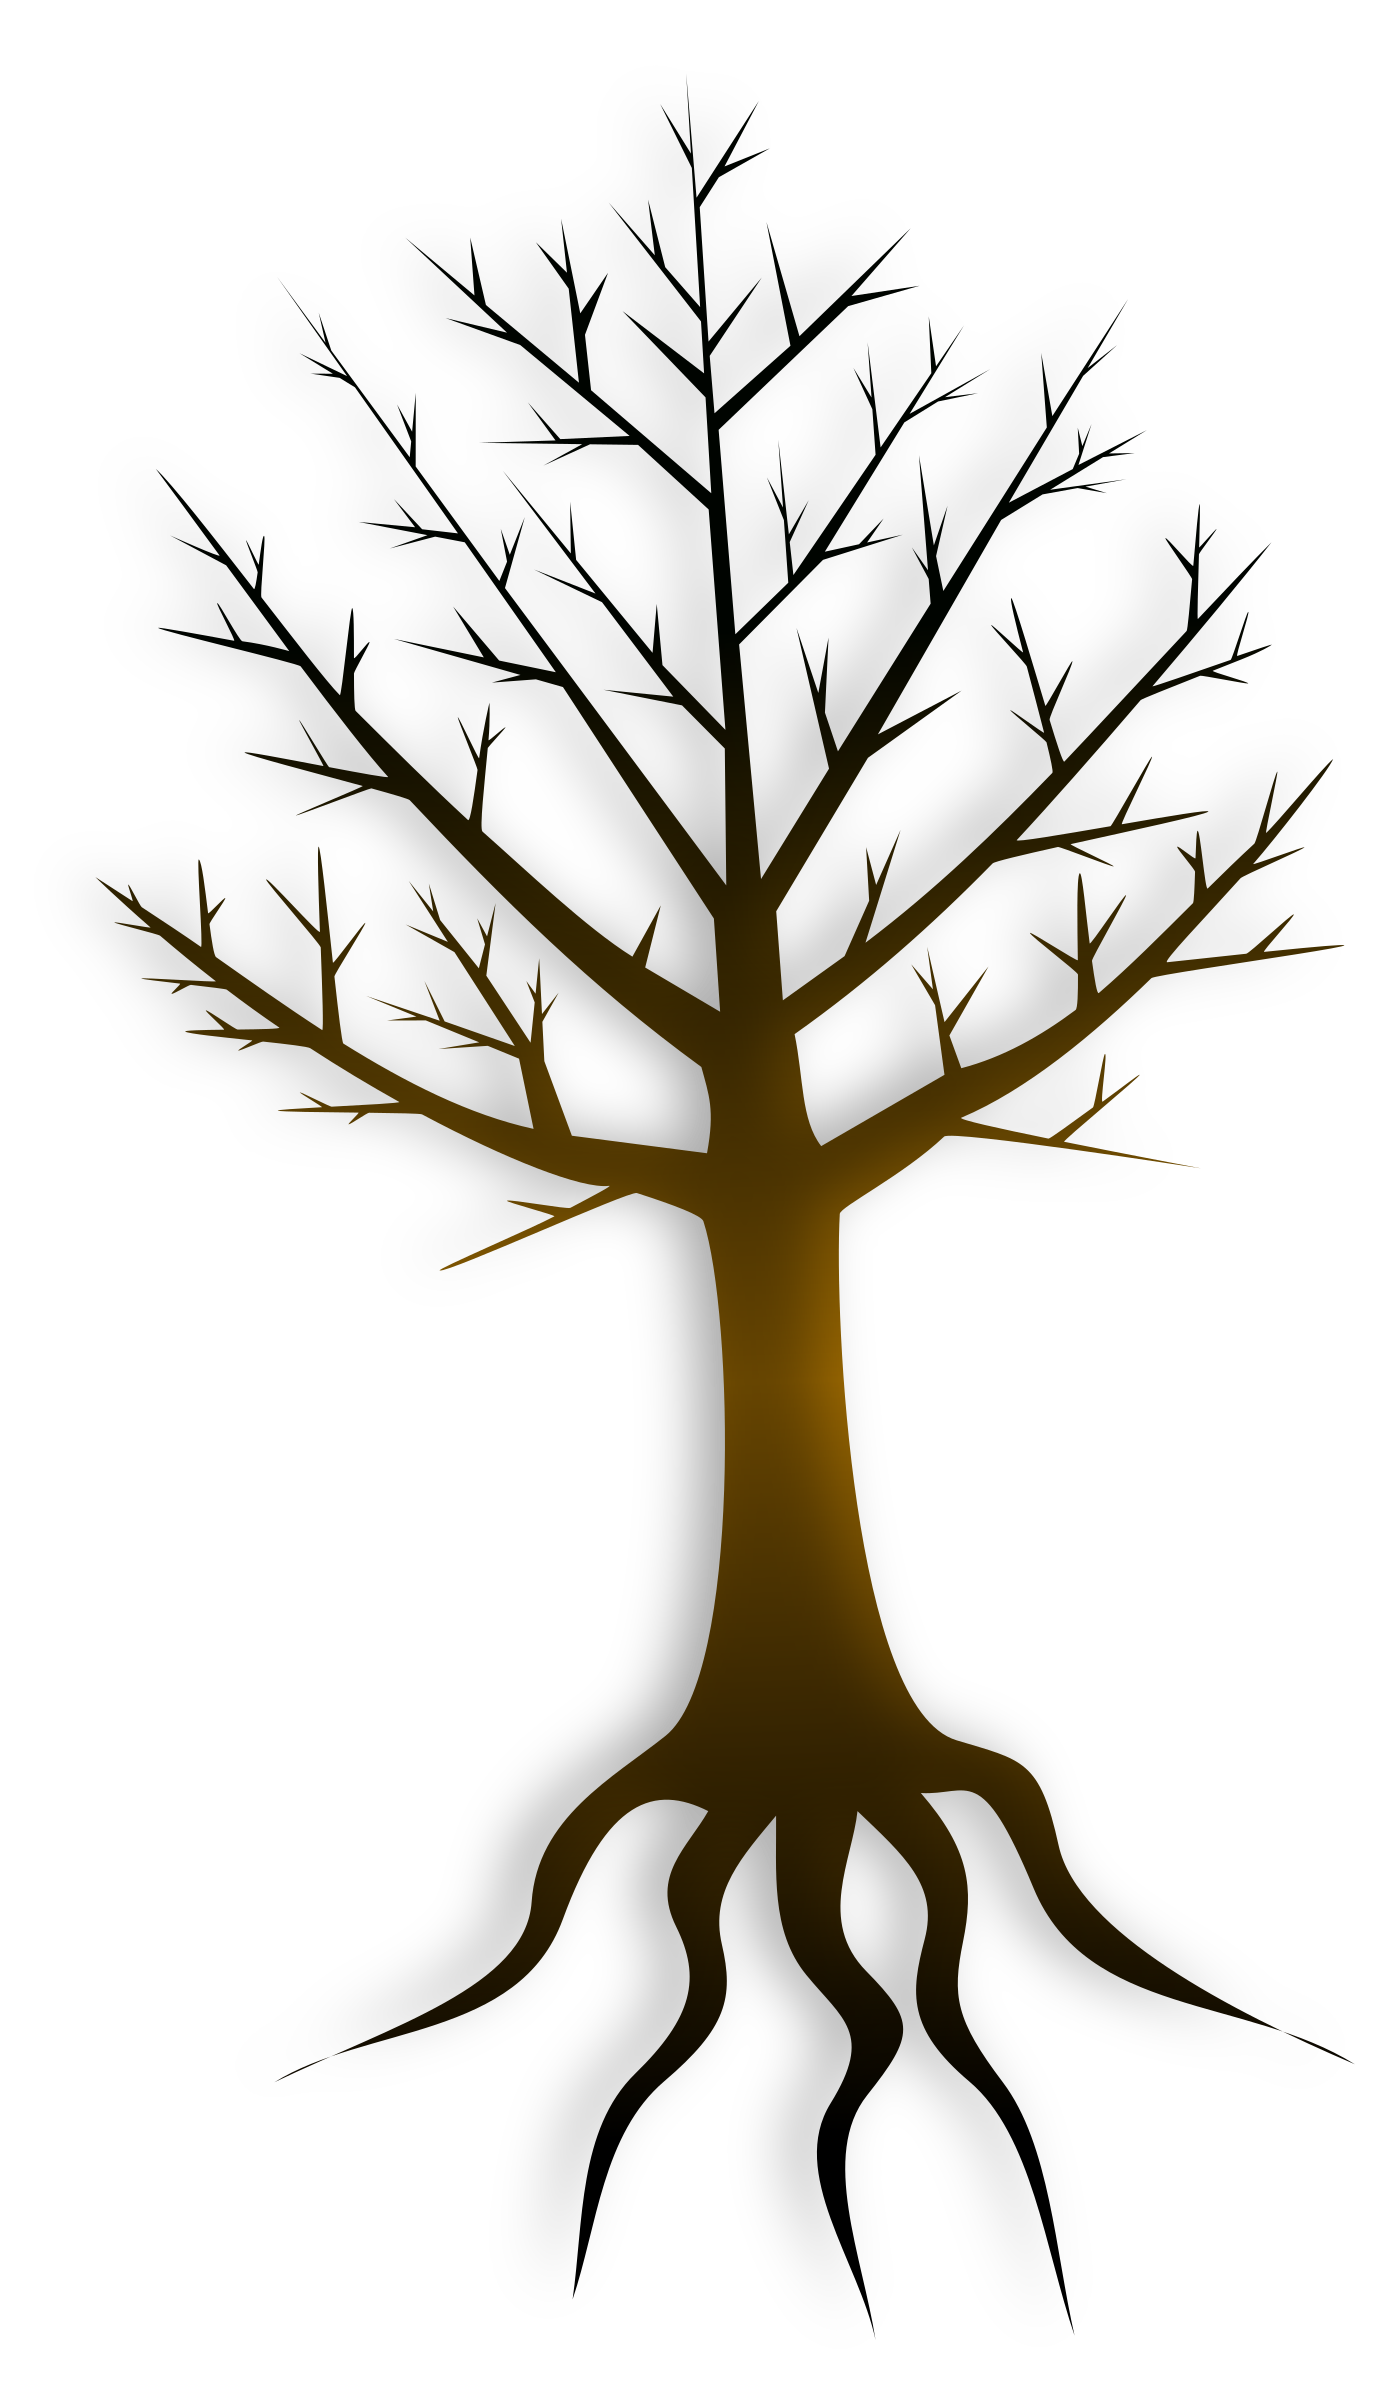 Clipart - Tree Trunk graphic free